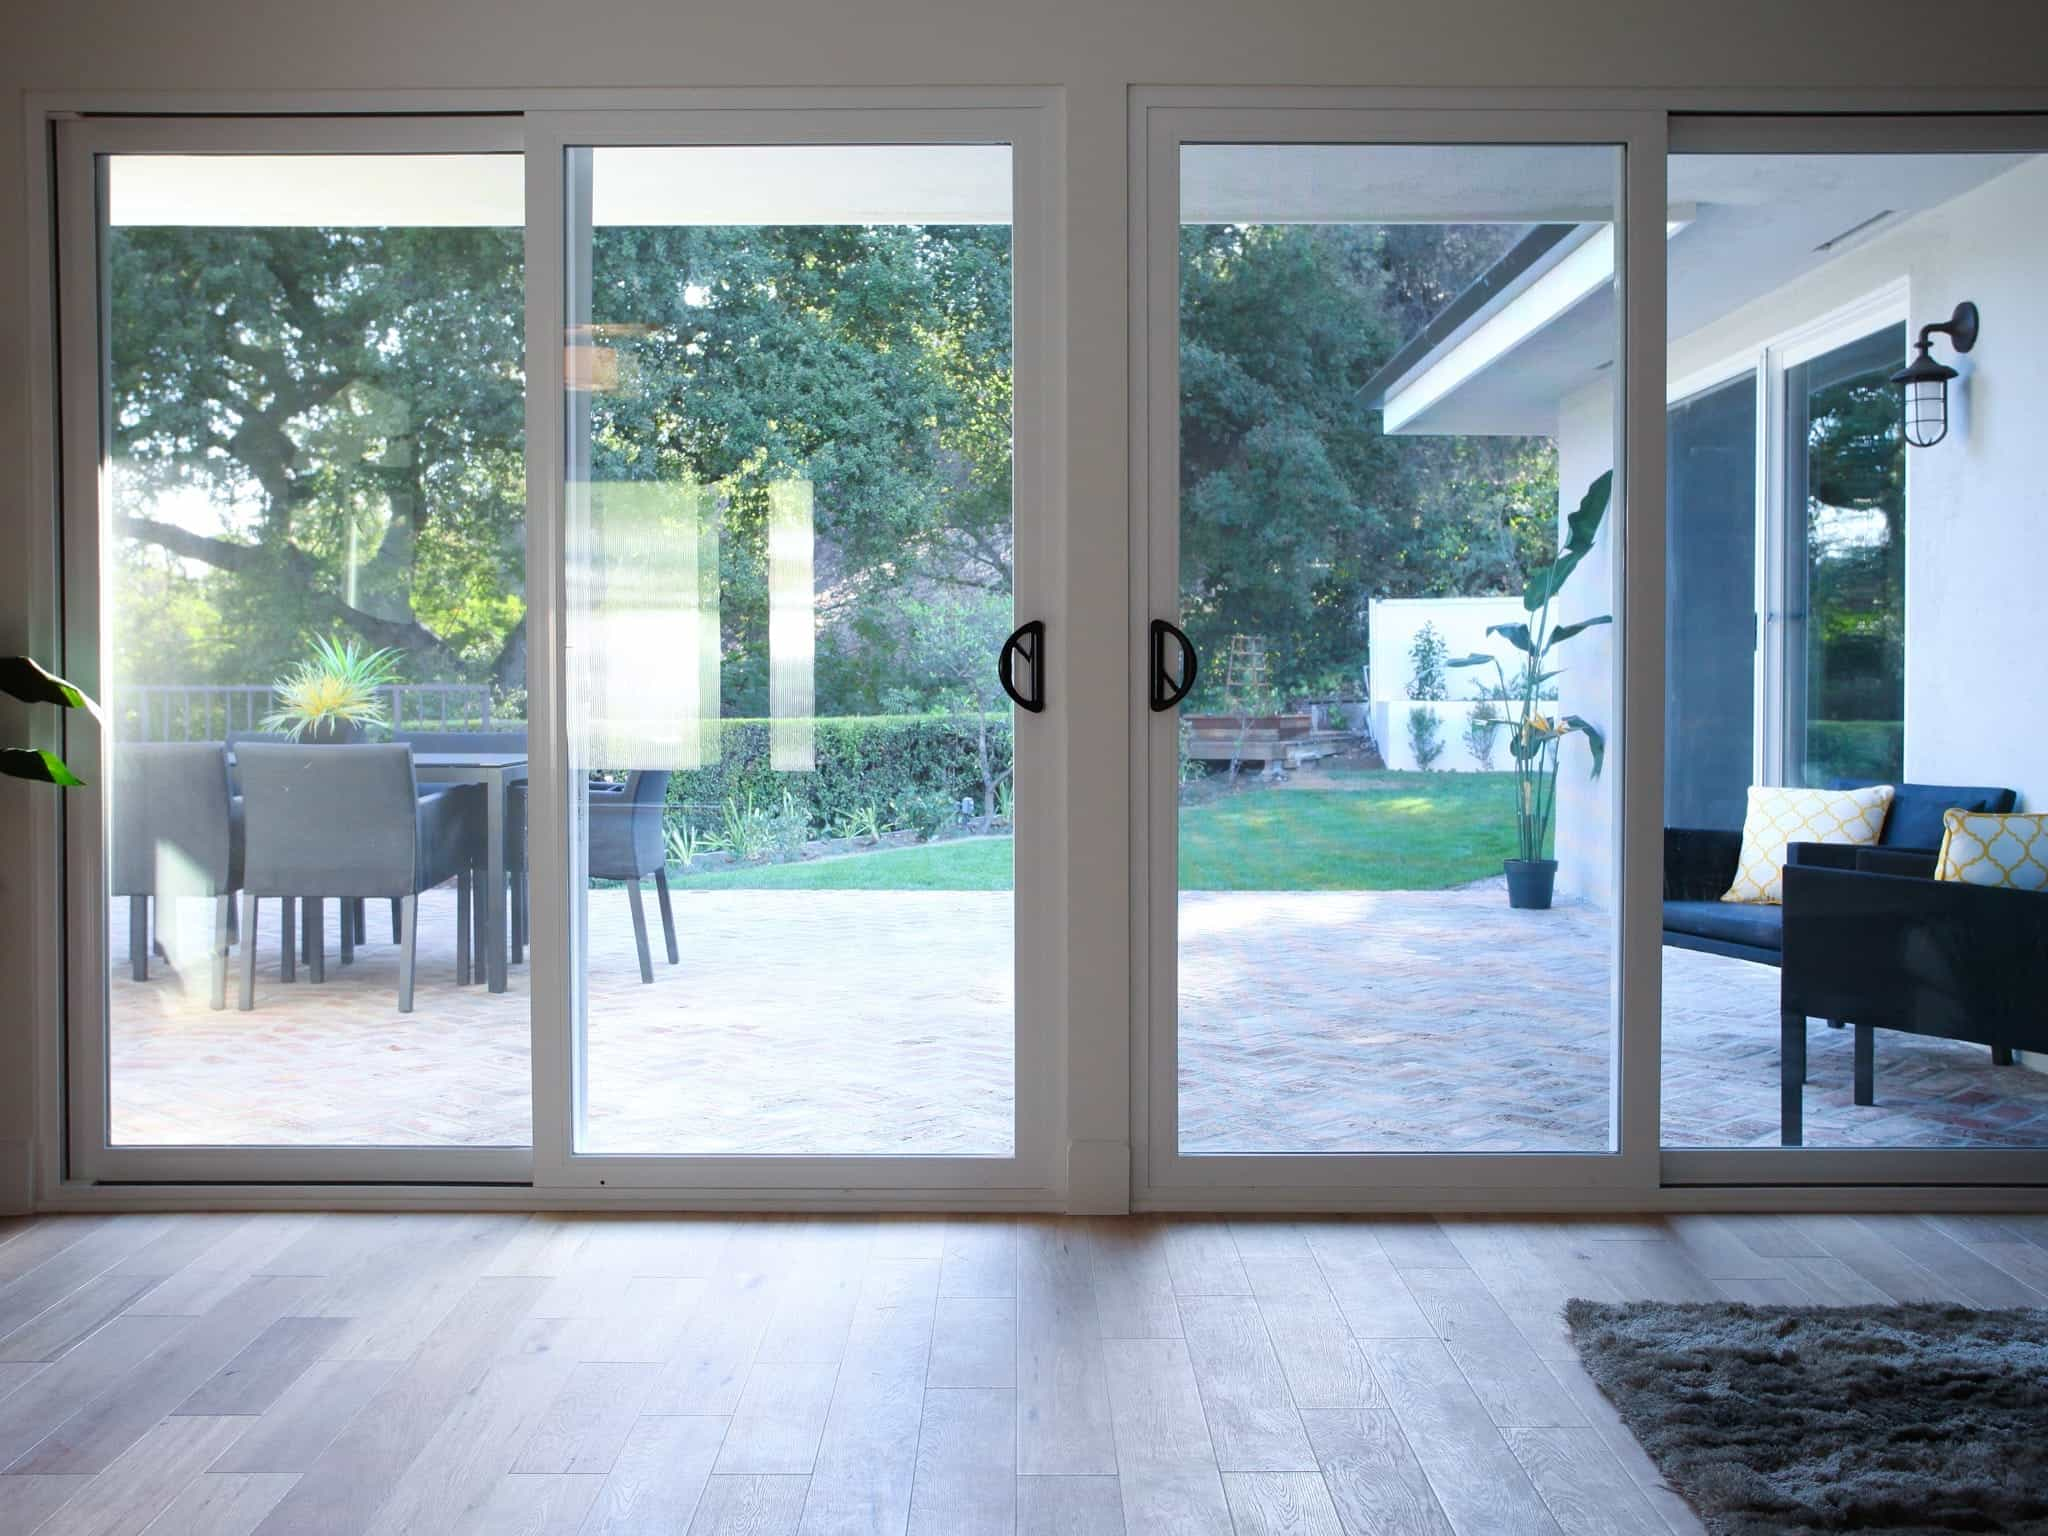 Minimalist Glass Sliding Doors (Image 8 of 21)